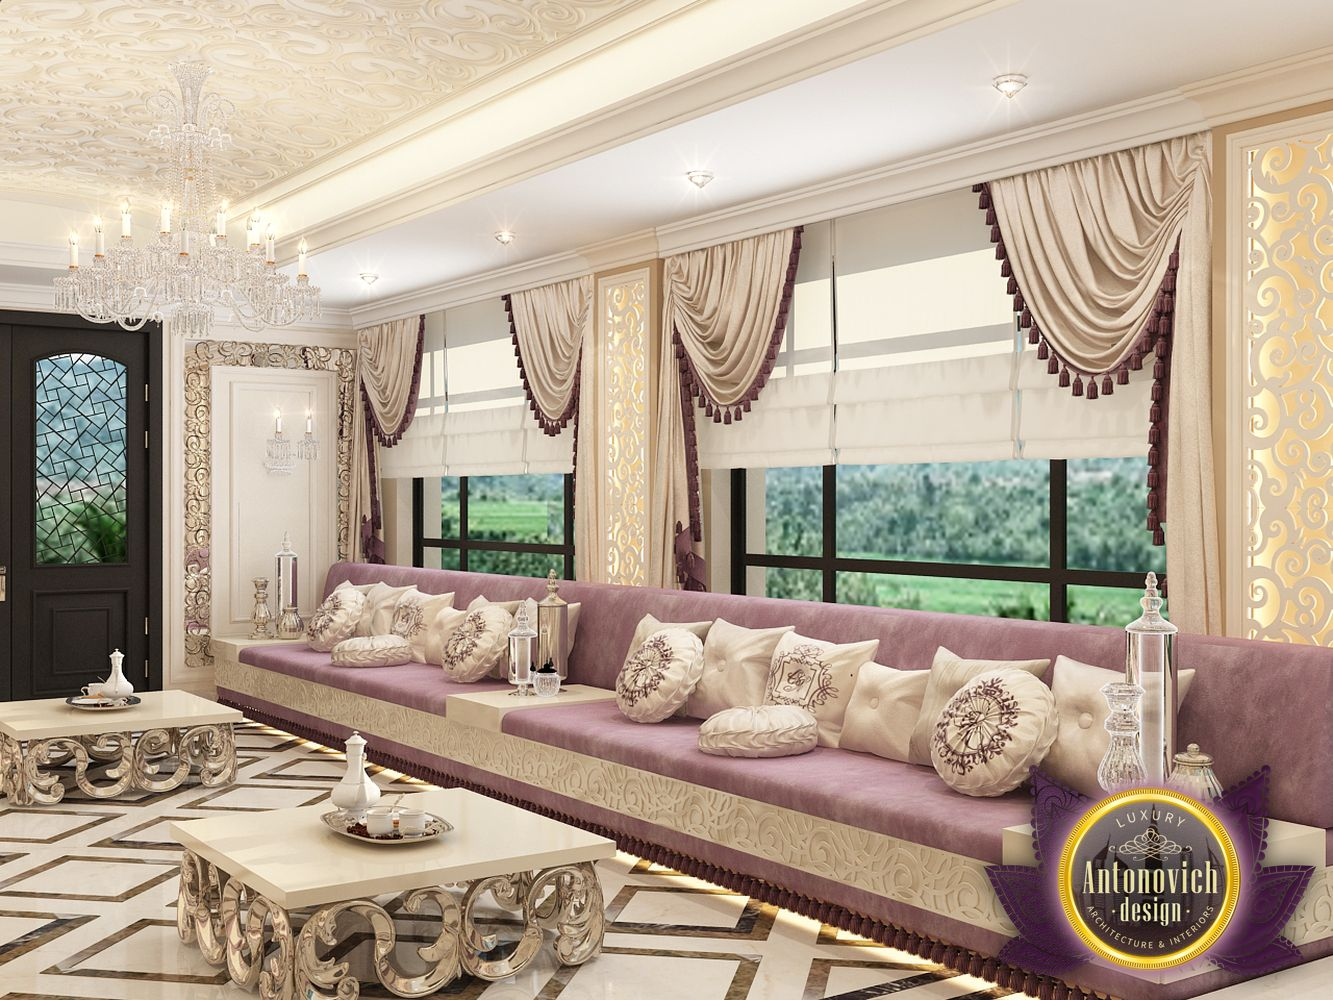 Living Room Designs Kenya kenyadesign: living room design in kenya of luxury antonovich design